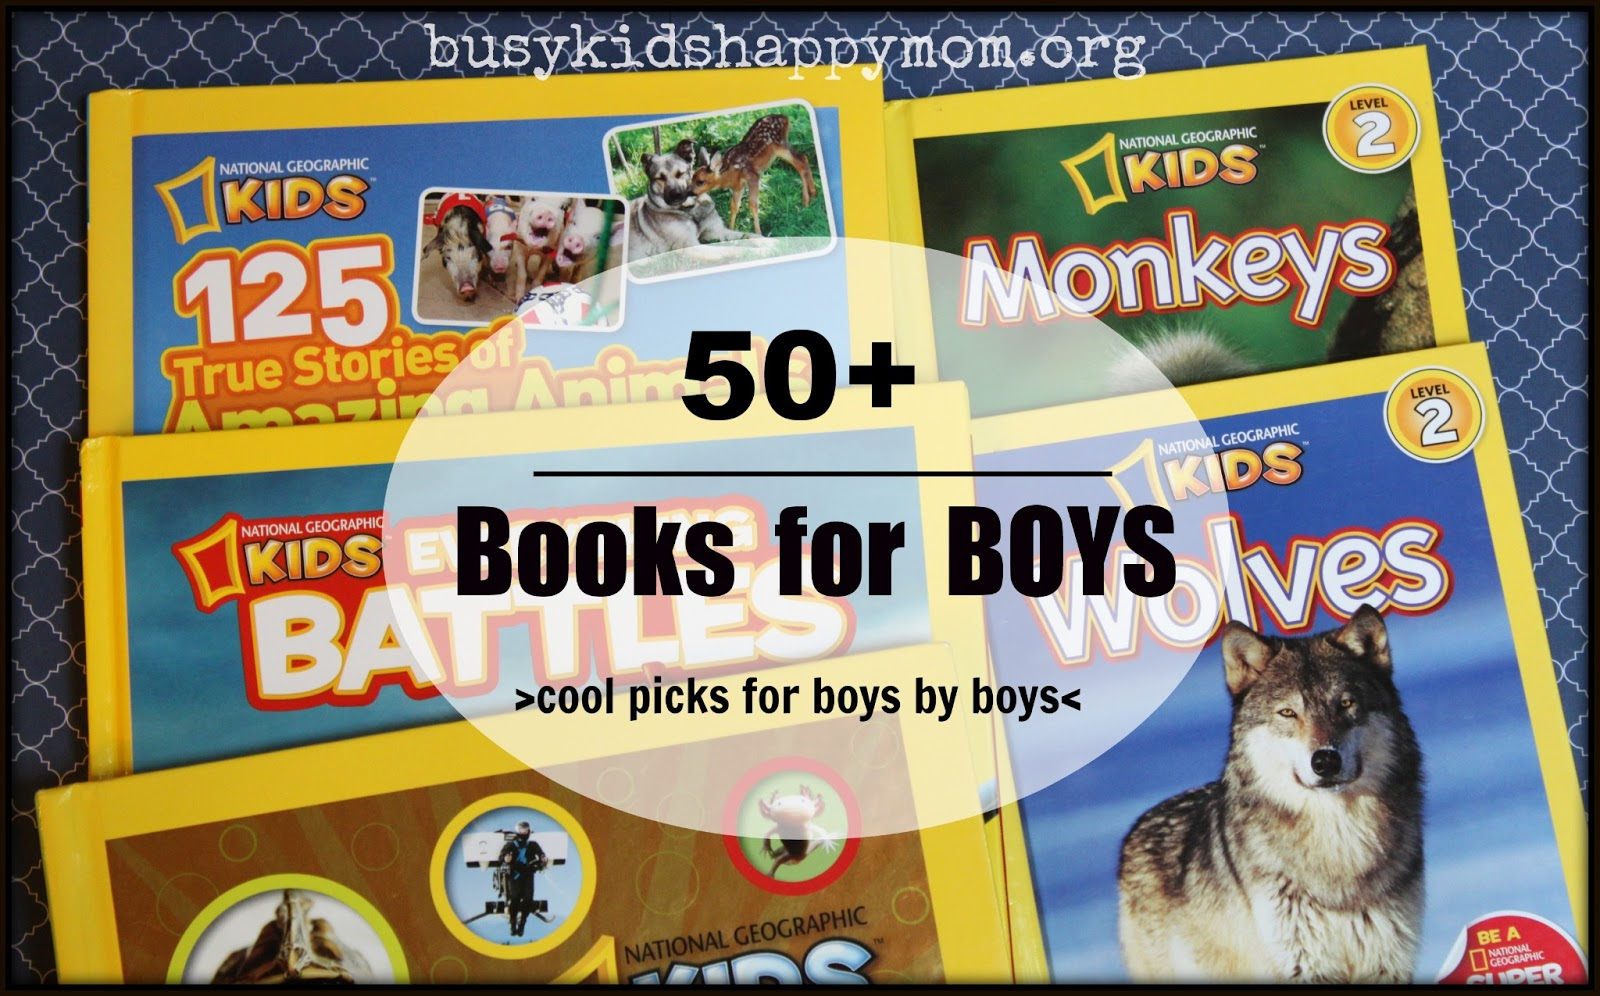 Books for 8 Year Old Boys - Busy Kids Happy Mom